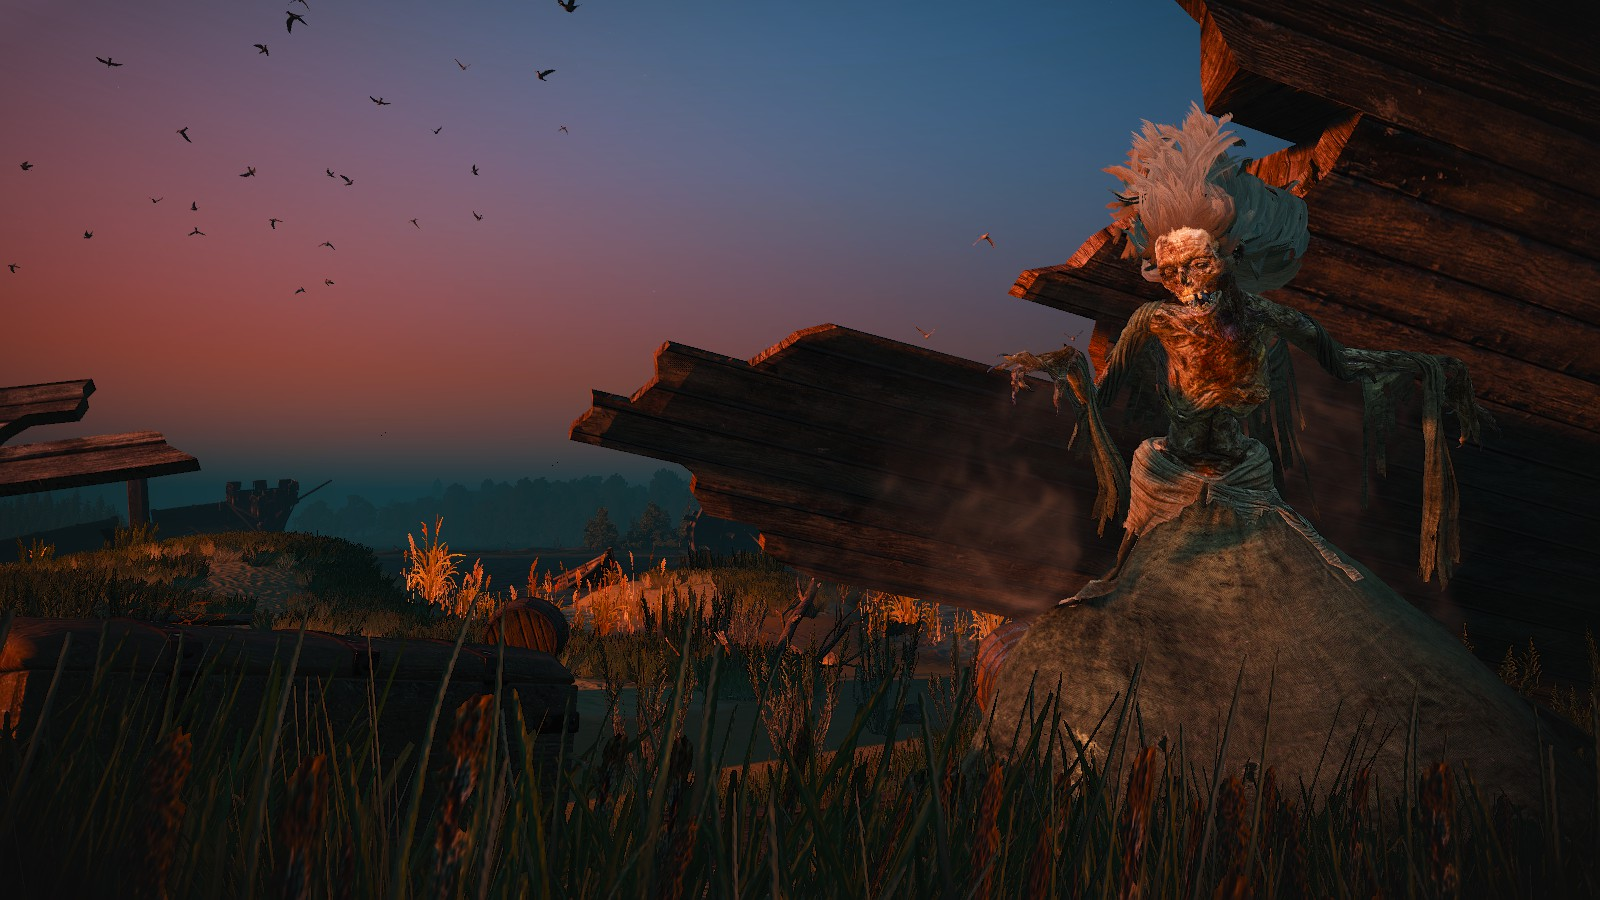 Fantome pirate at the witcher 3 nexus mods and community - Pirate fantome ...